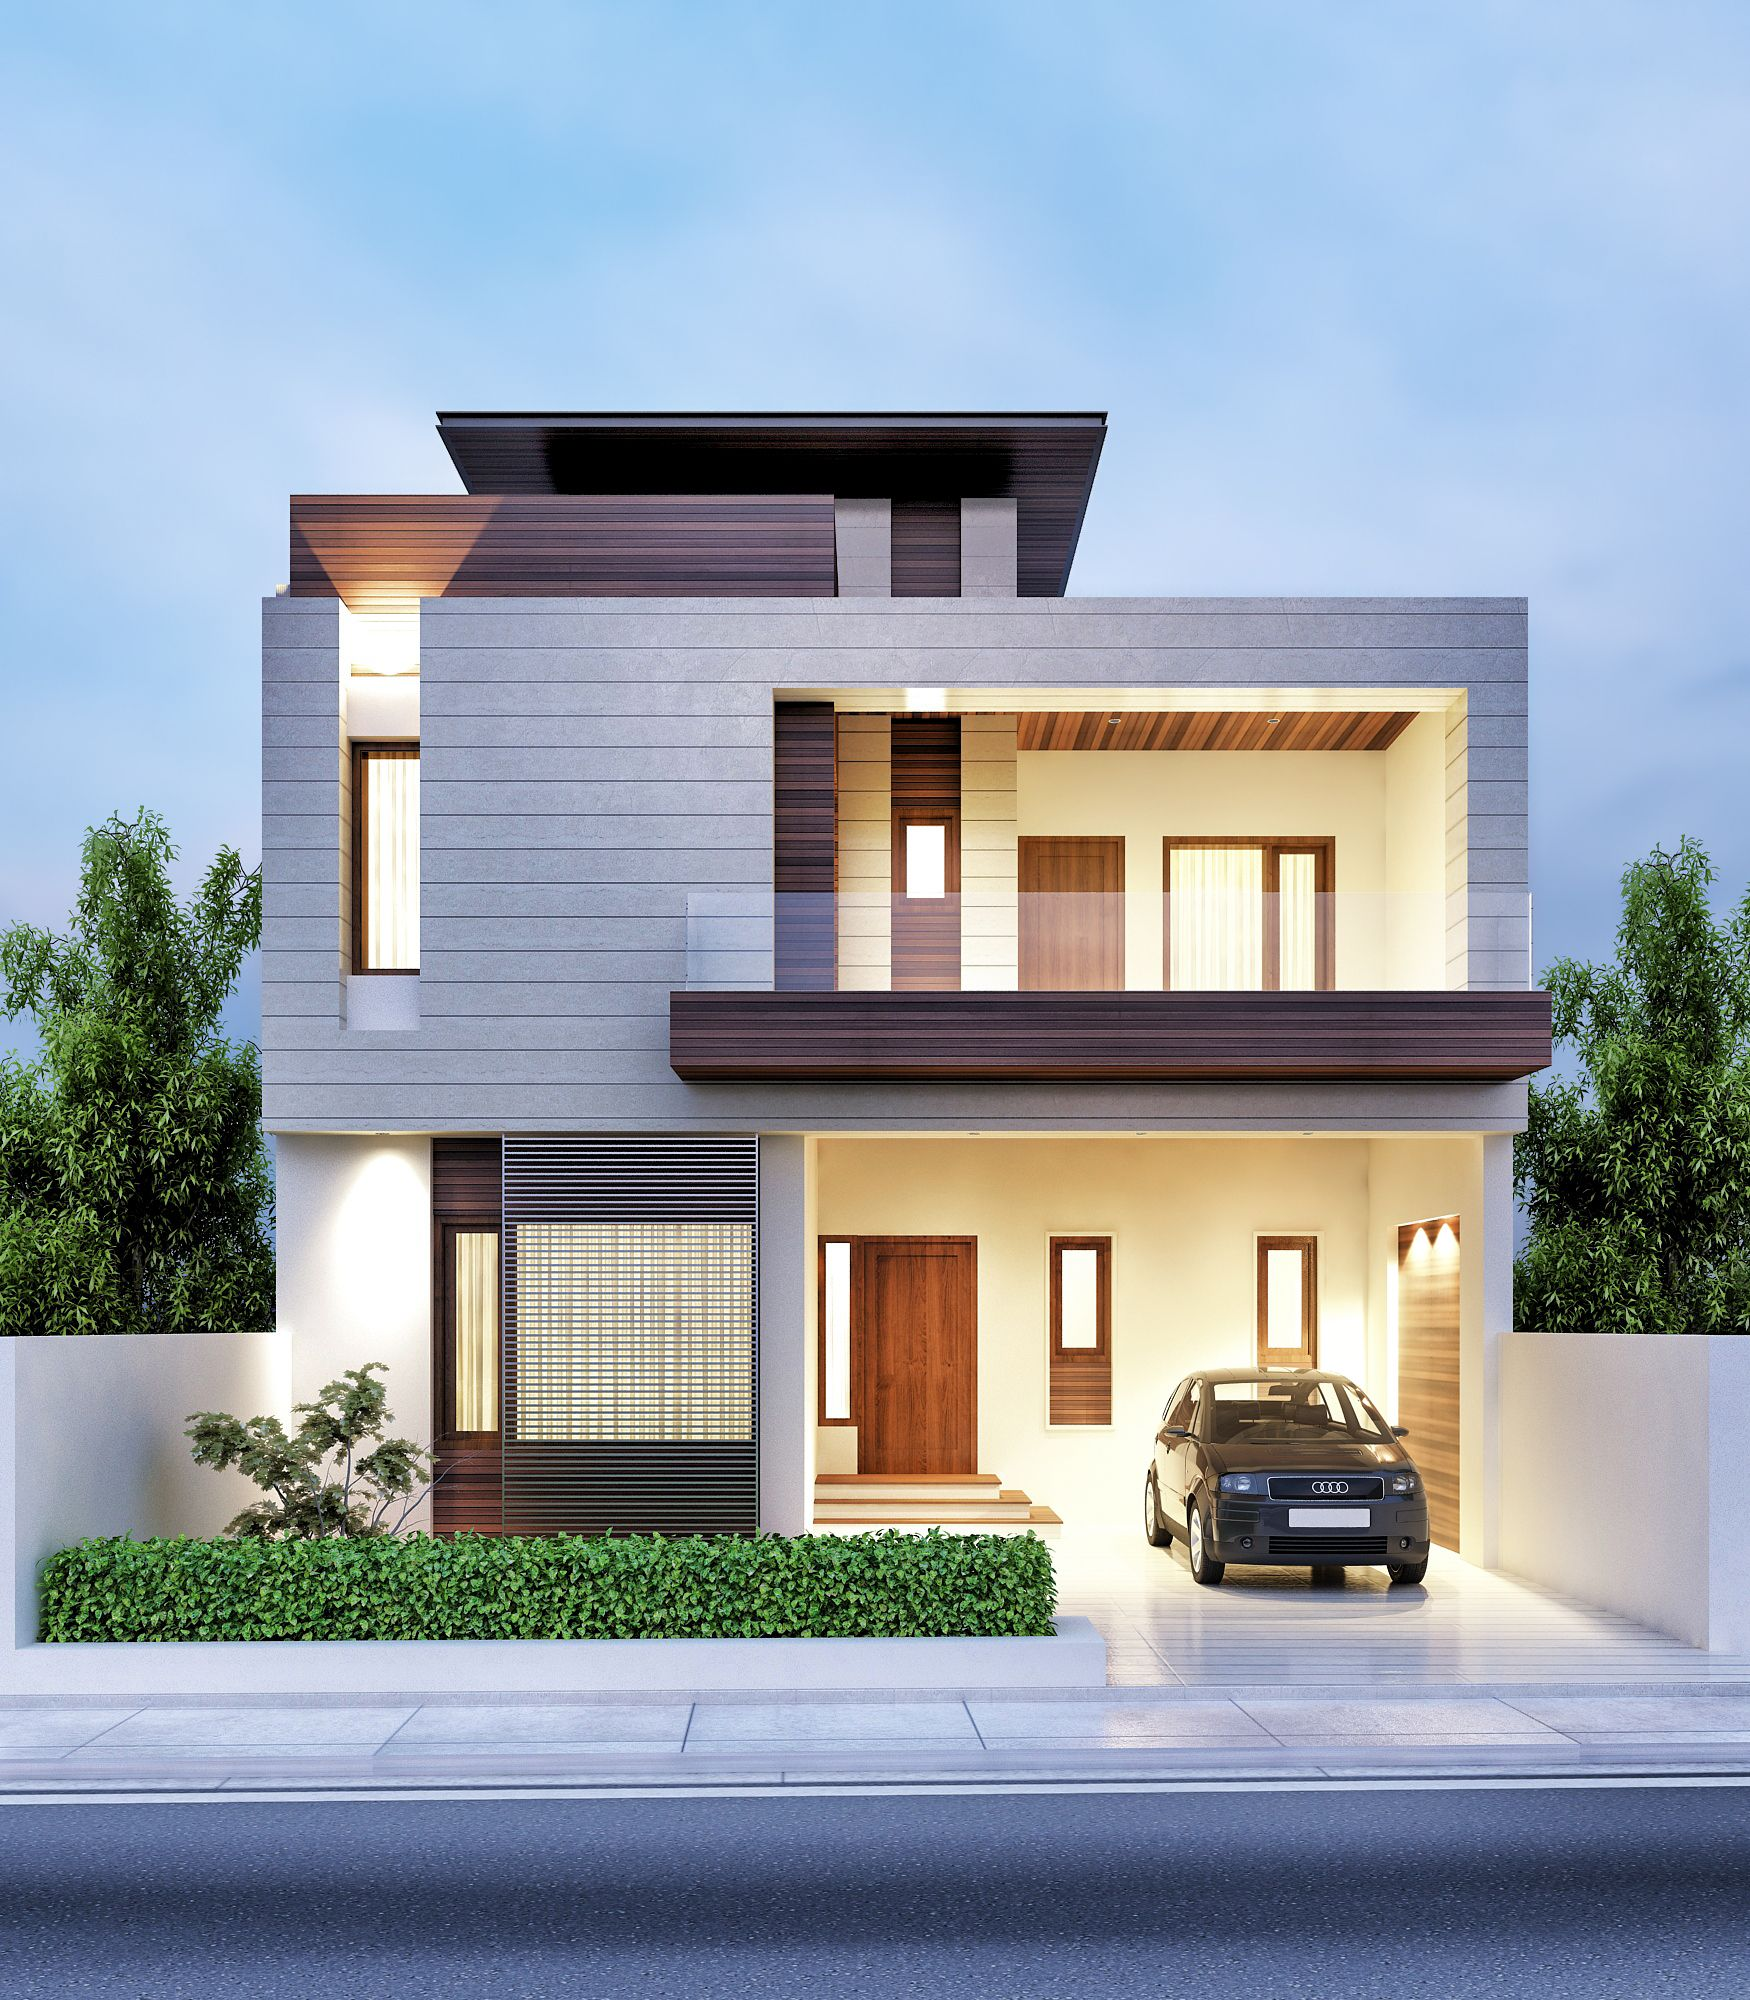 Architectural previsualization renders front elevation designs house front home exterior design design interior